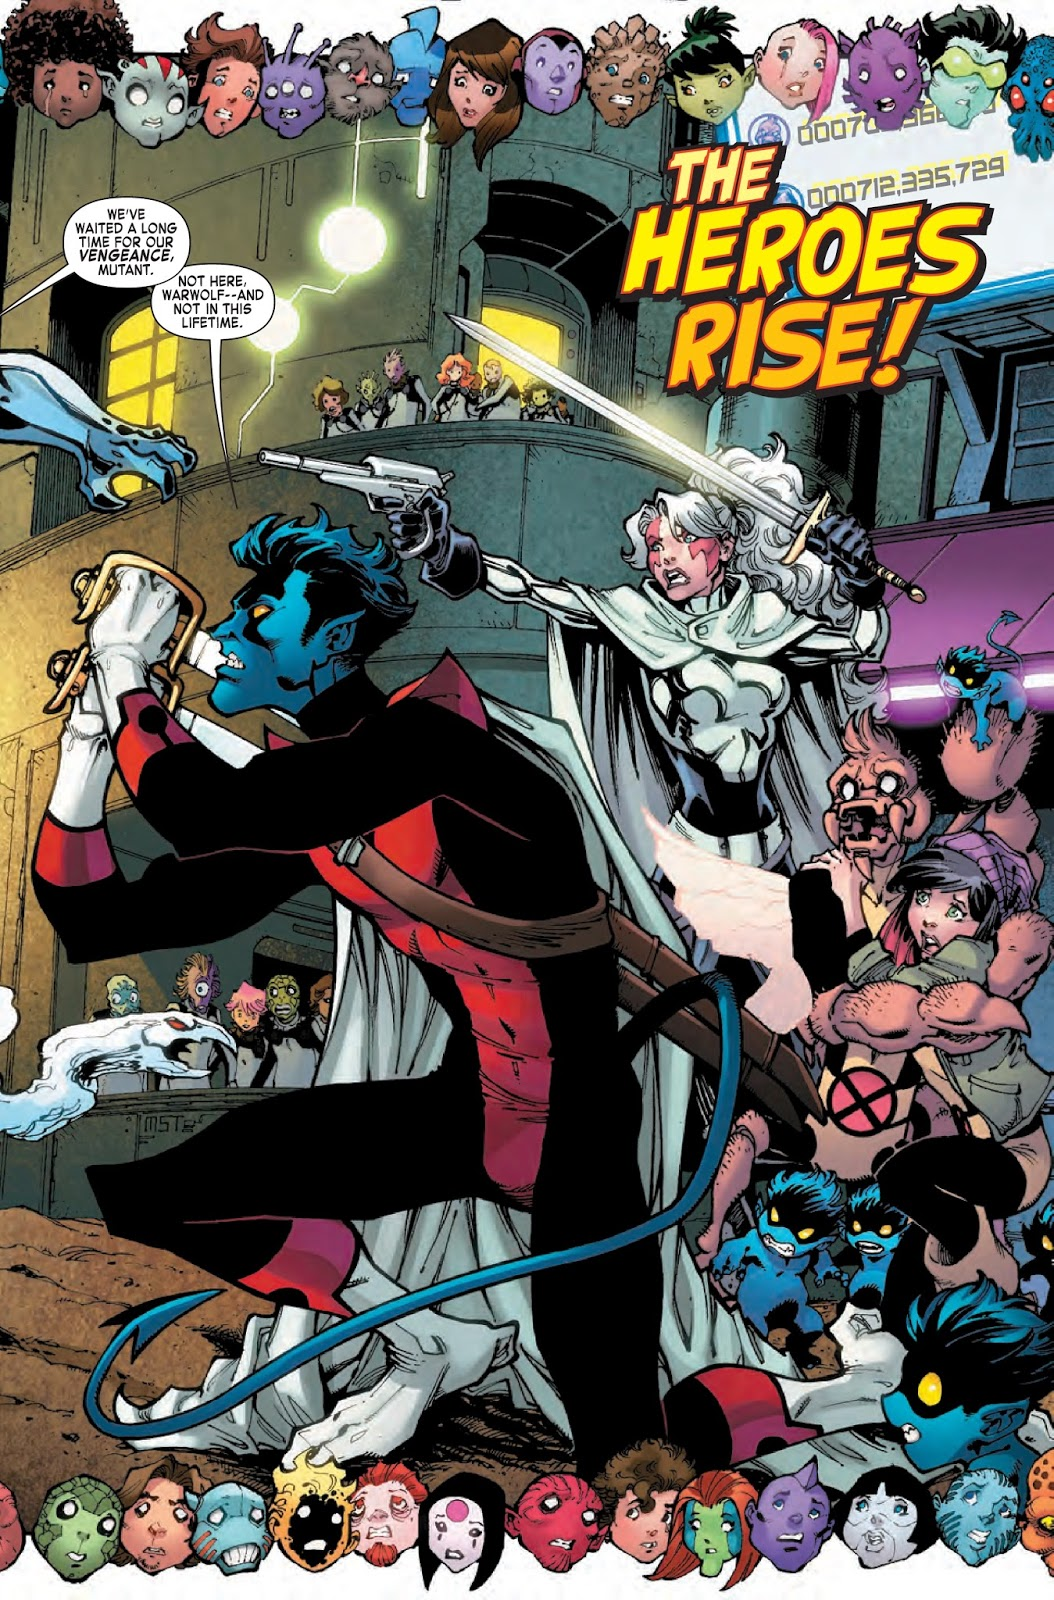 Bloody Bess and Nightcrawler must protect the students